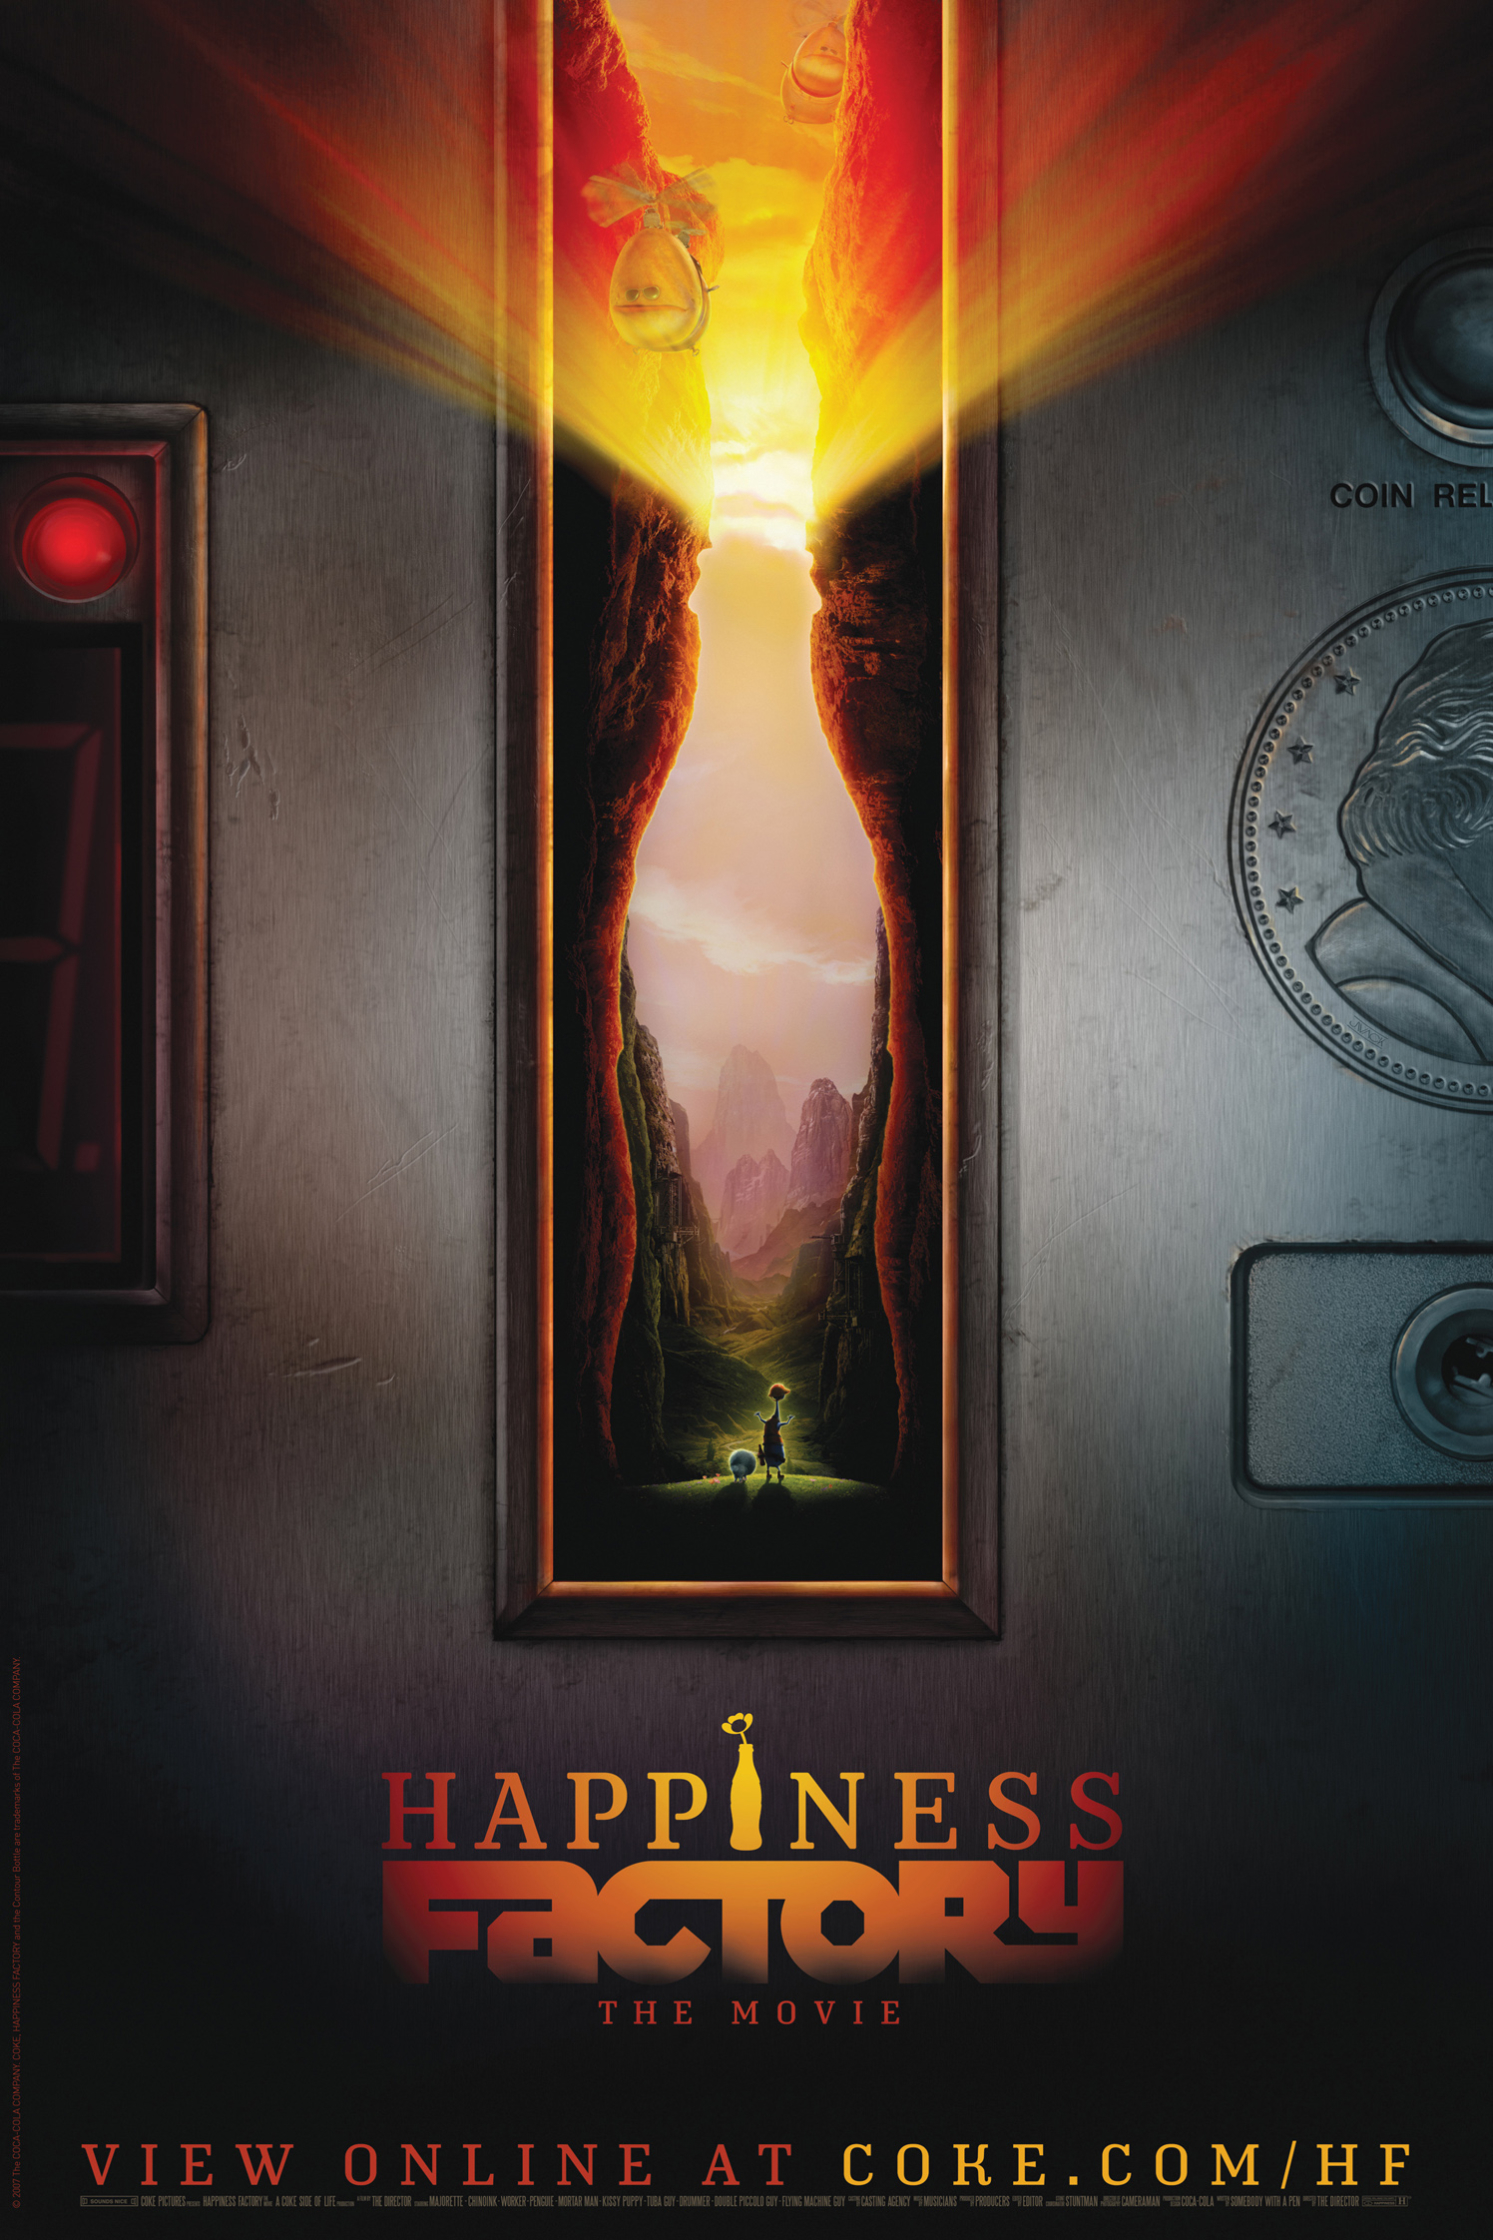 Coca Cola Happiness Factory the Movie Keyhole